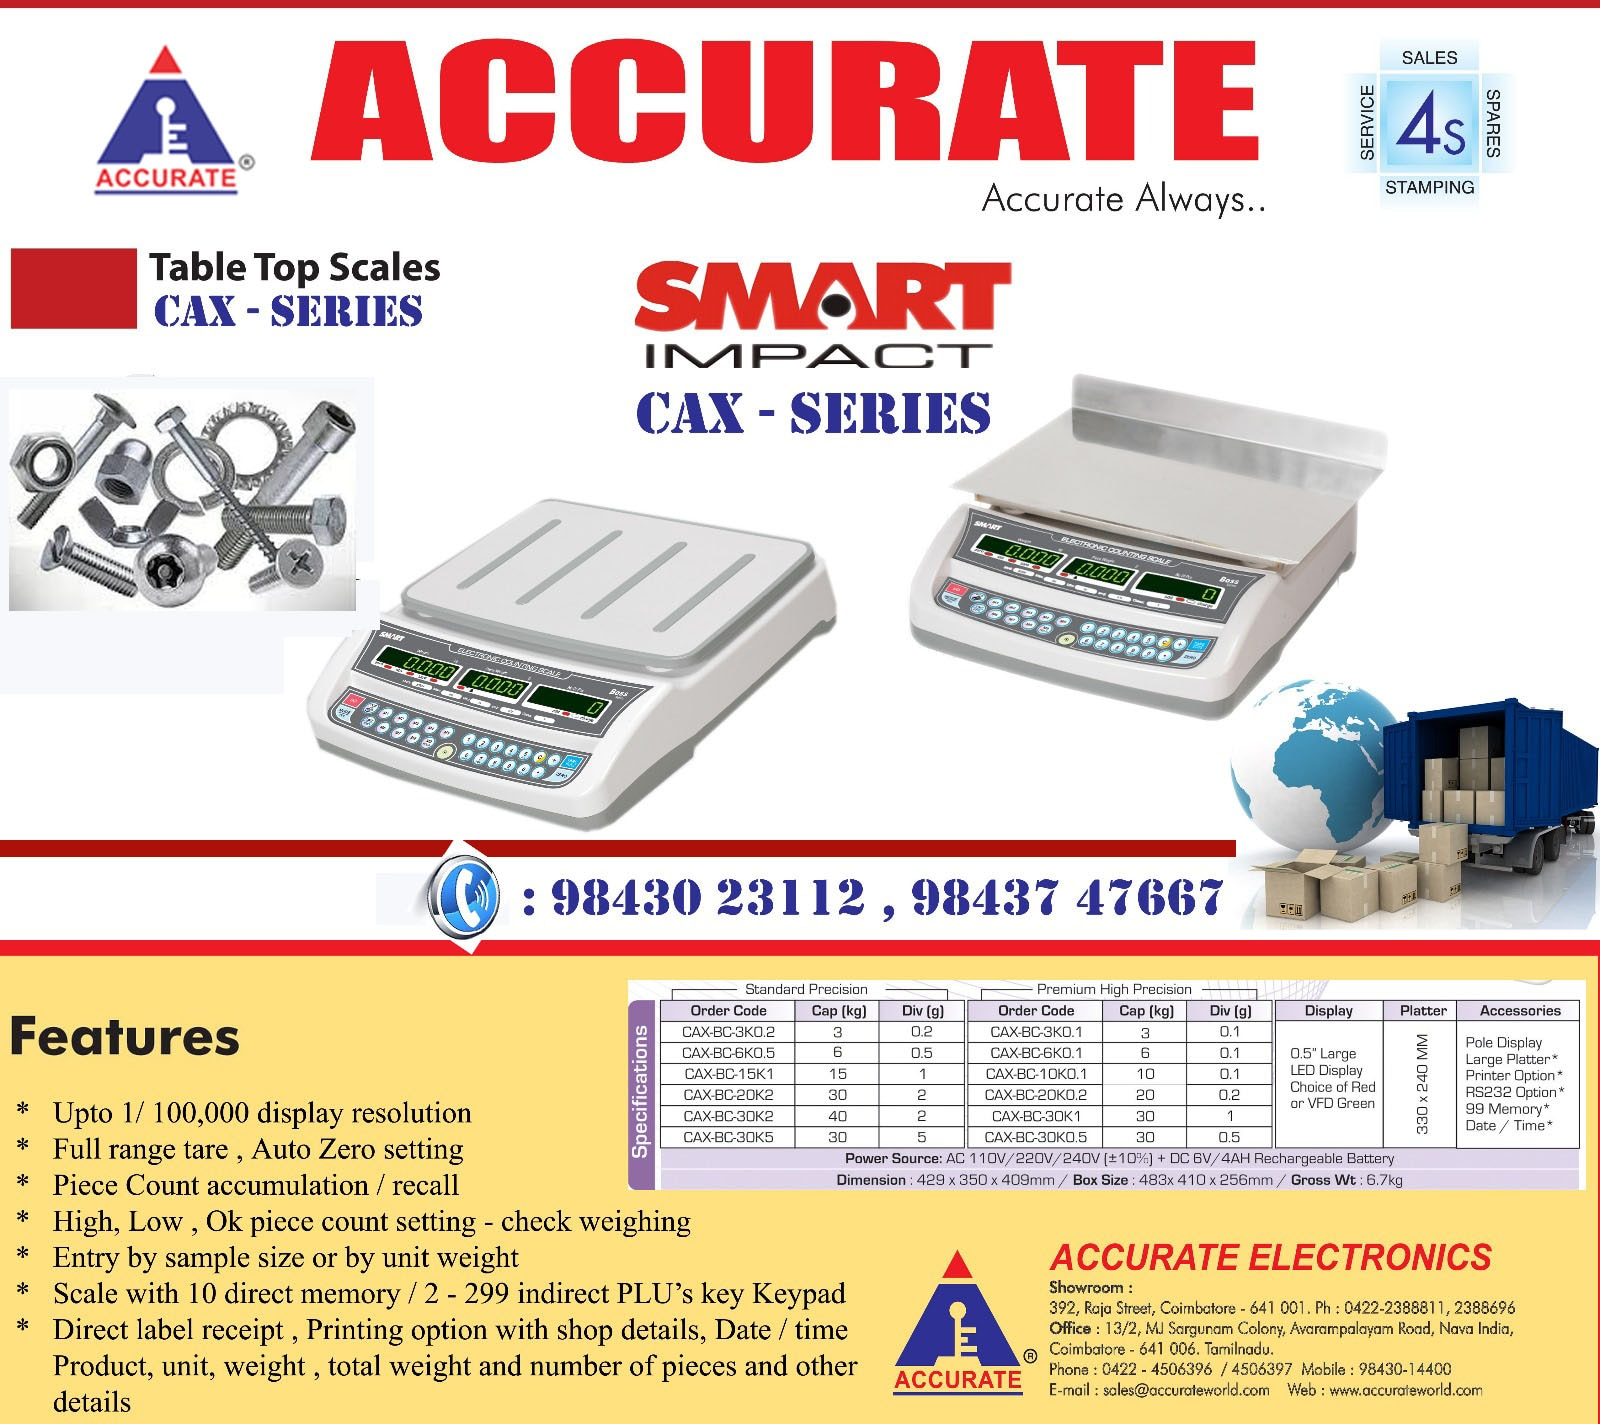 This is the most convenient strain gauge load cell based digital scale, indispensable to modern commerce. This design has more advantages, also very reliable and accurate.  Accurate Scales employ the latest techniques and approved by the Directorate of Legal metrology for stamping by the Weights and Measures Authorities.  ACCURATE - CAX Capacity : 6Kg, 10Kg, 30 Kg  Accuracy : 0.1g, 1g, 0.5g  Pan Size : 330 x 240 mm Body: ABS Display: LED 0.56mm ( Red )  Features   Counting Function   High Accuracy   Re-chargeable Battery   Three Display ( Weight, Rate & Qty )  #HardwareShopWeighing #CottonMillsWeighing #ProductionUnitsWeighing #PackingUnitsWeighing #Buttoncounting #Labelcounting #Fasternerscounting #StoresPiececounting #PrecisionWeighing  #PrintingOptionScale #RS232OptionScale #USBOptionScale #99MemoryOptionScale #6kgscale #10KgScale #30KgScale #PiececountingScale #Weighingscale #IshtaaWeighing  #Scales  #AccurateWeighing  #AccurateScale